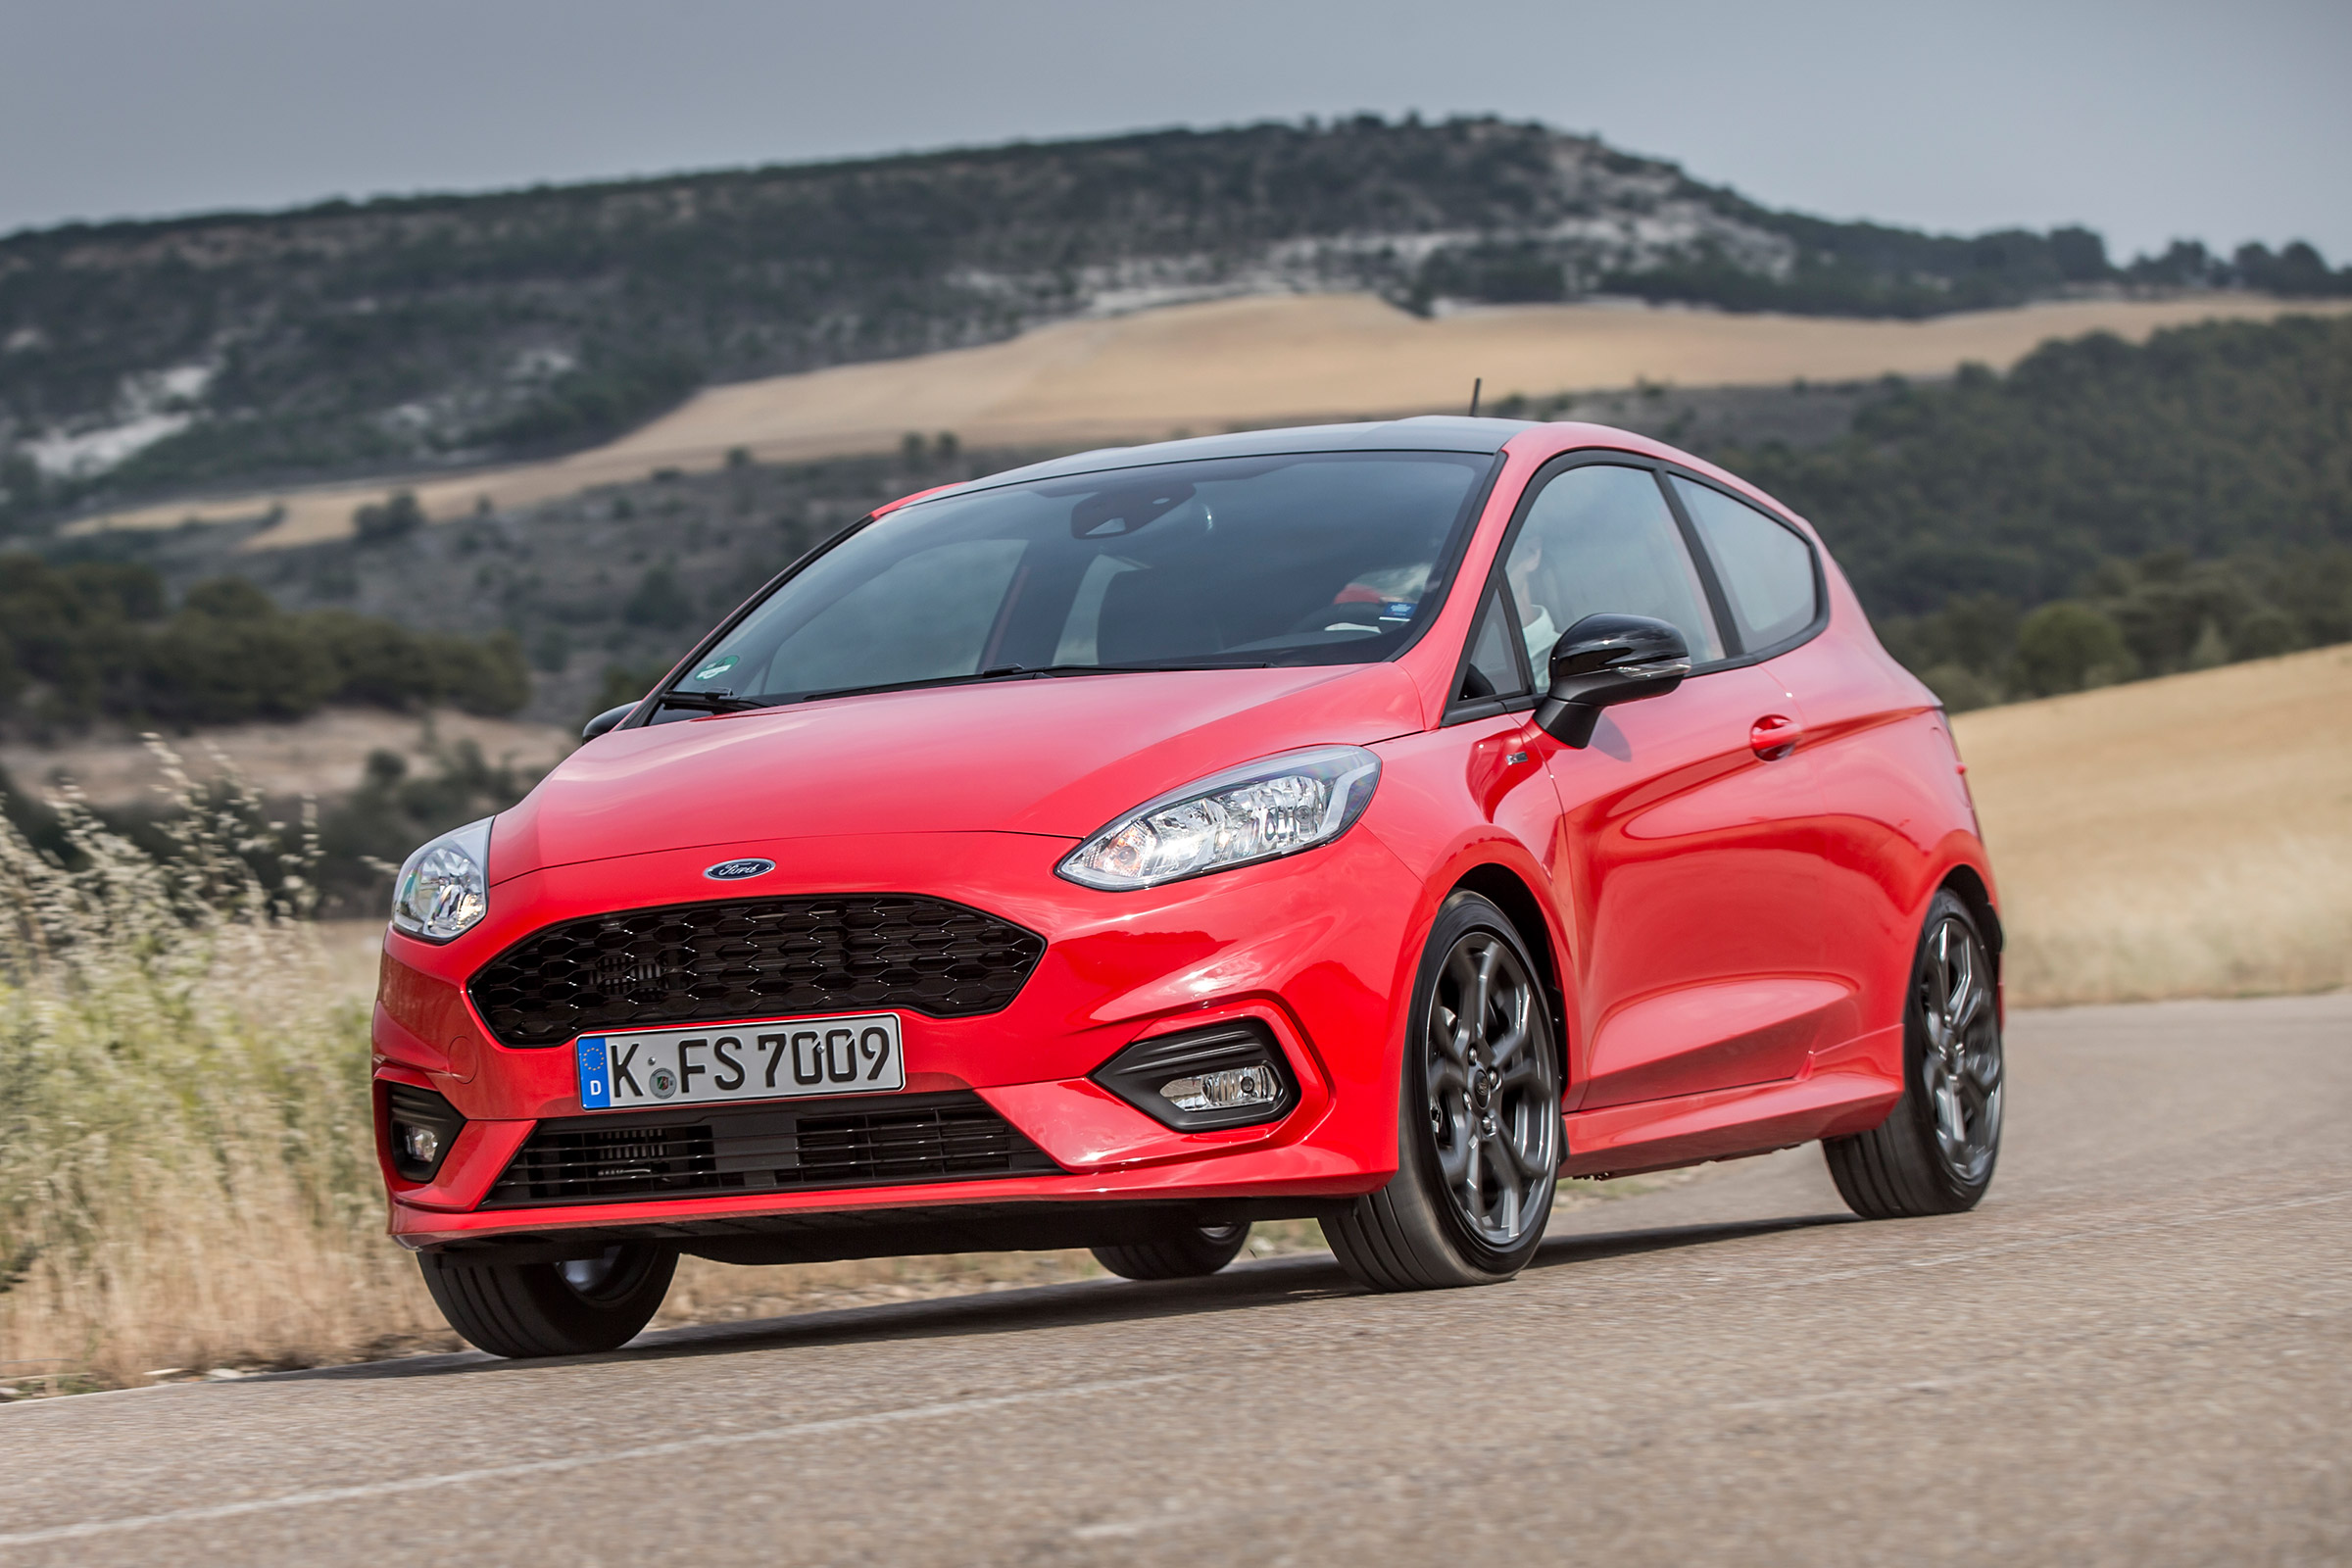 Ford Fiesta 1.0 Ecoboost Hybrid mHEV 155 ST-line Edition X